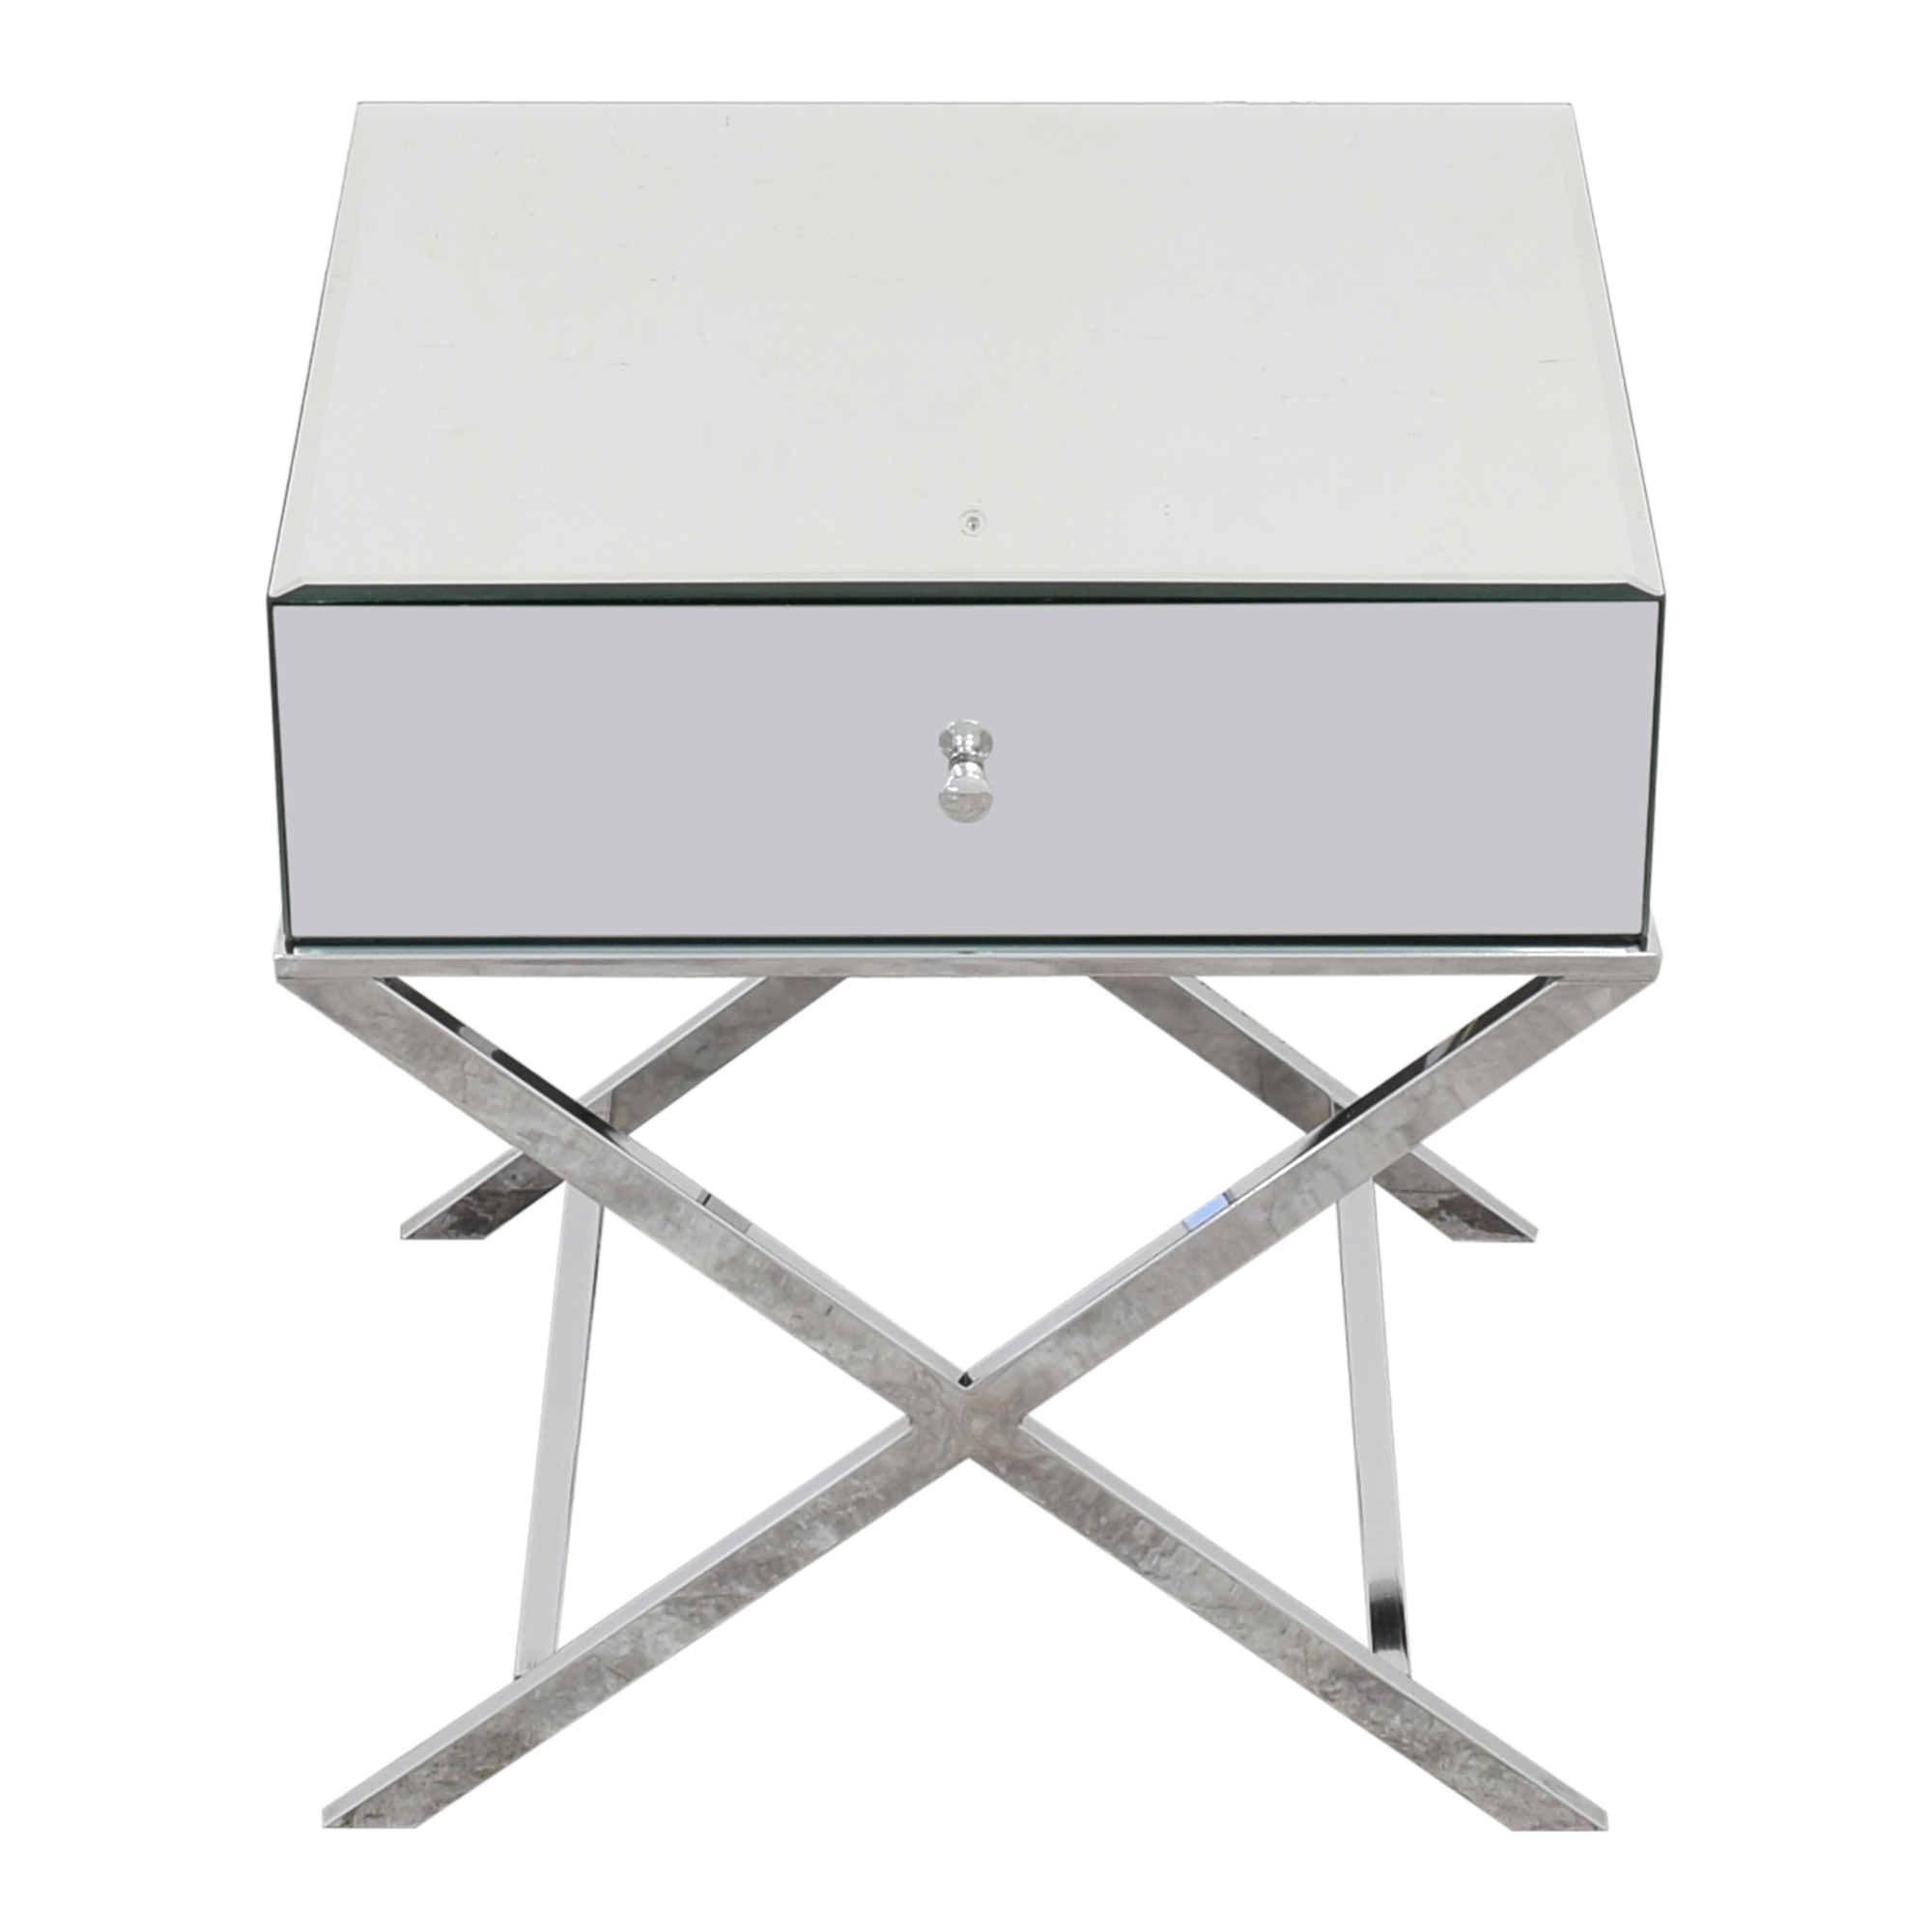 Wayfair Wayfair Desidério End Table With Storage pa